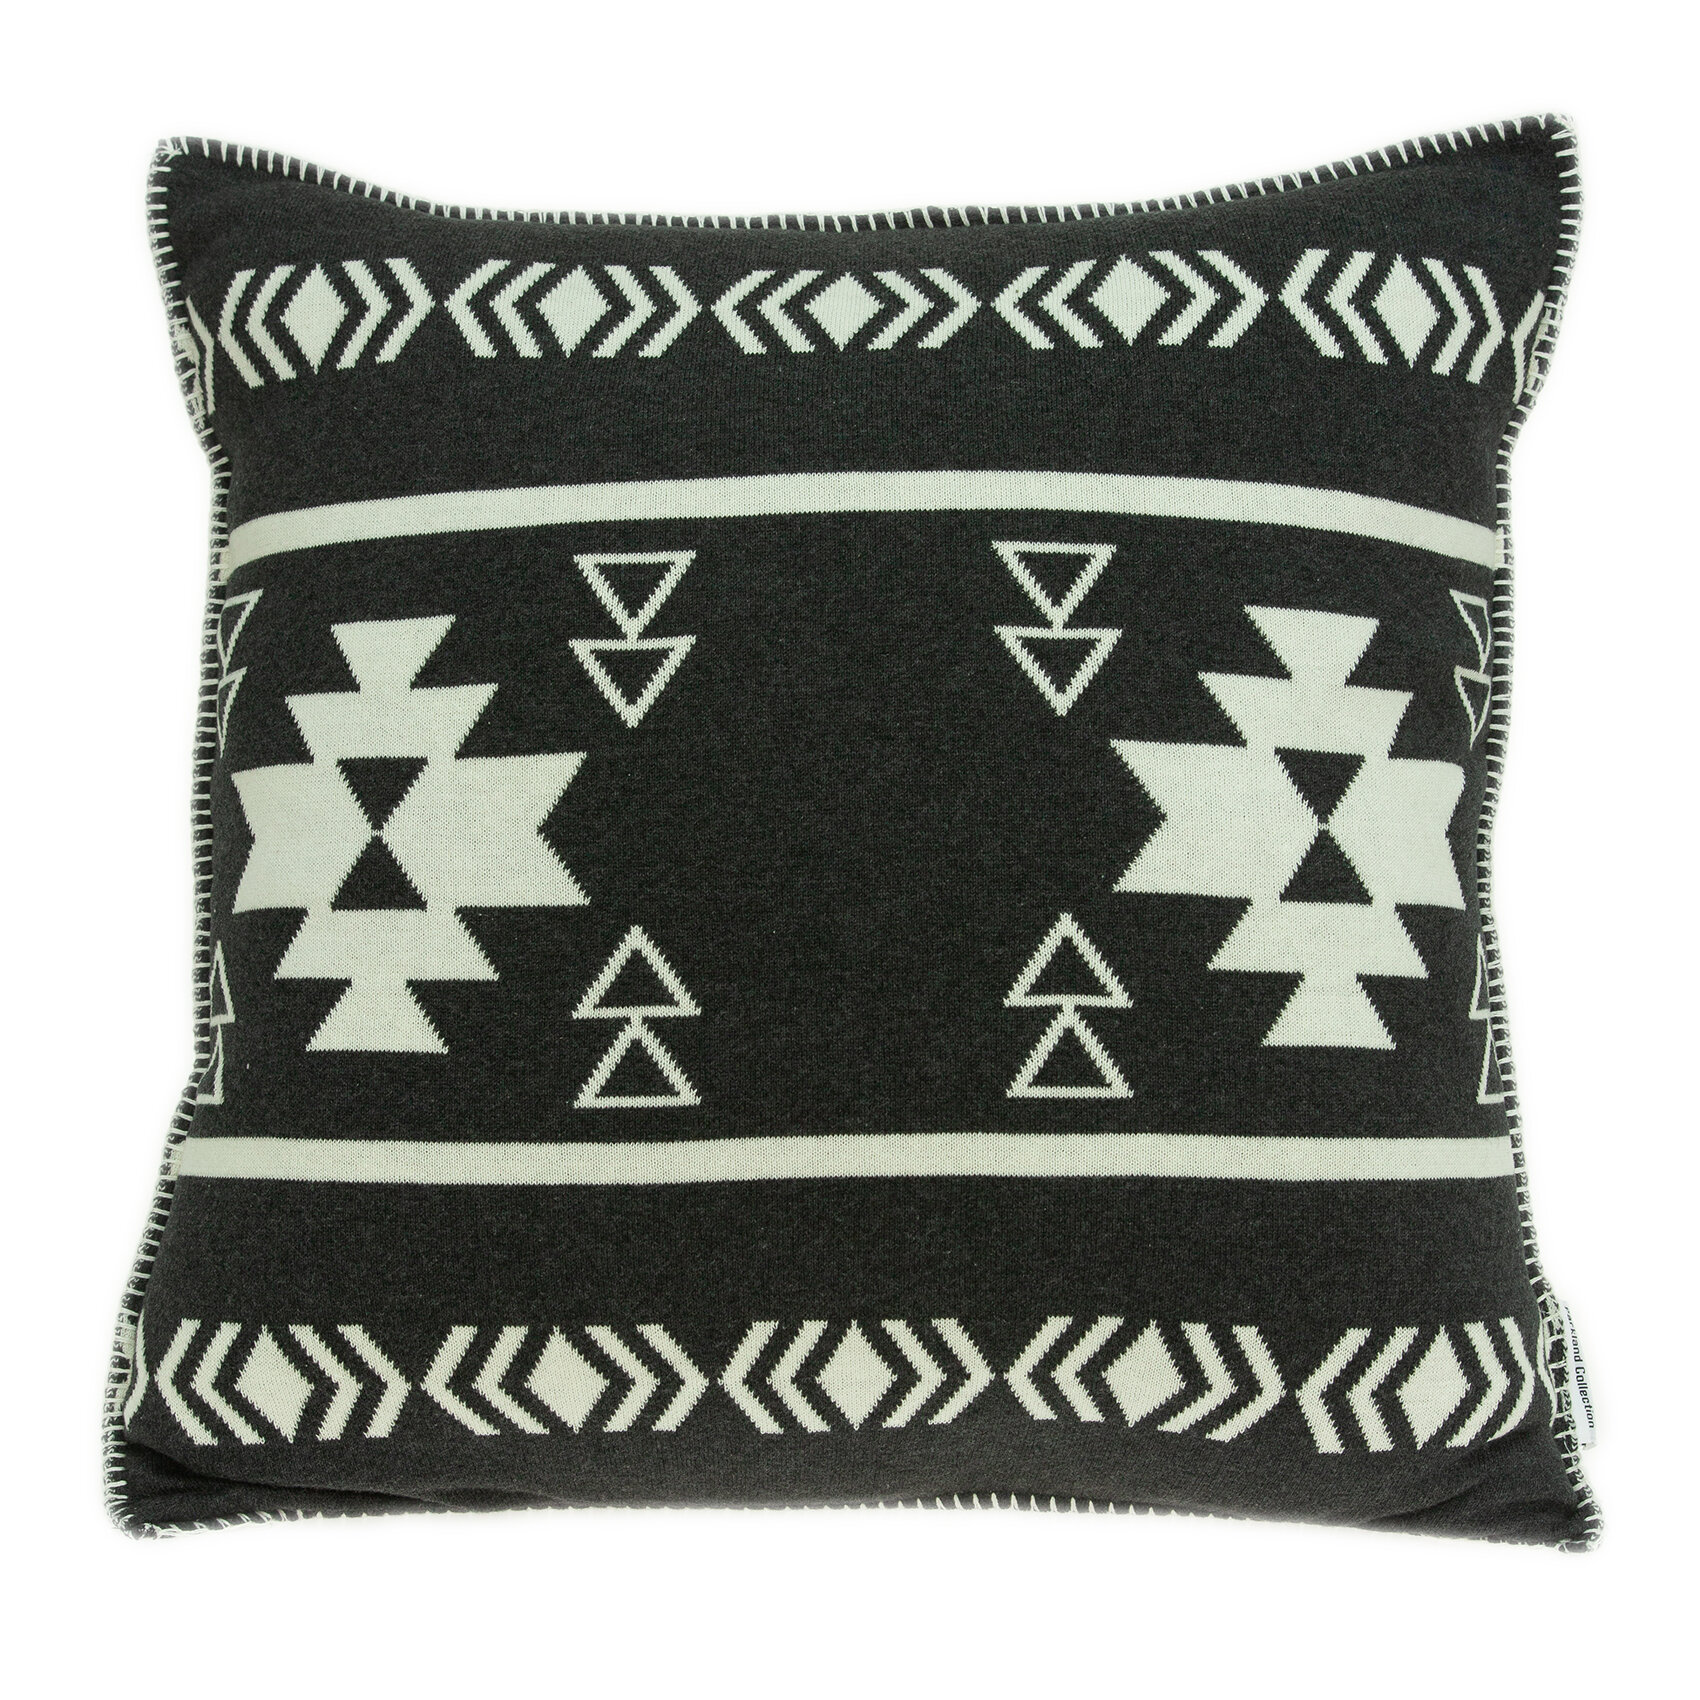 Union Rustic Sycamore Cotton Throw Pillow Cover Wayfair